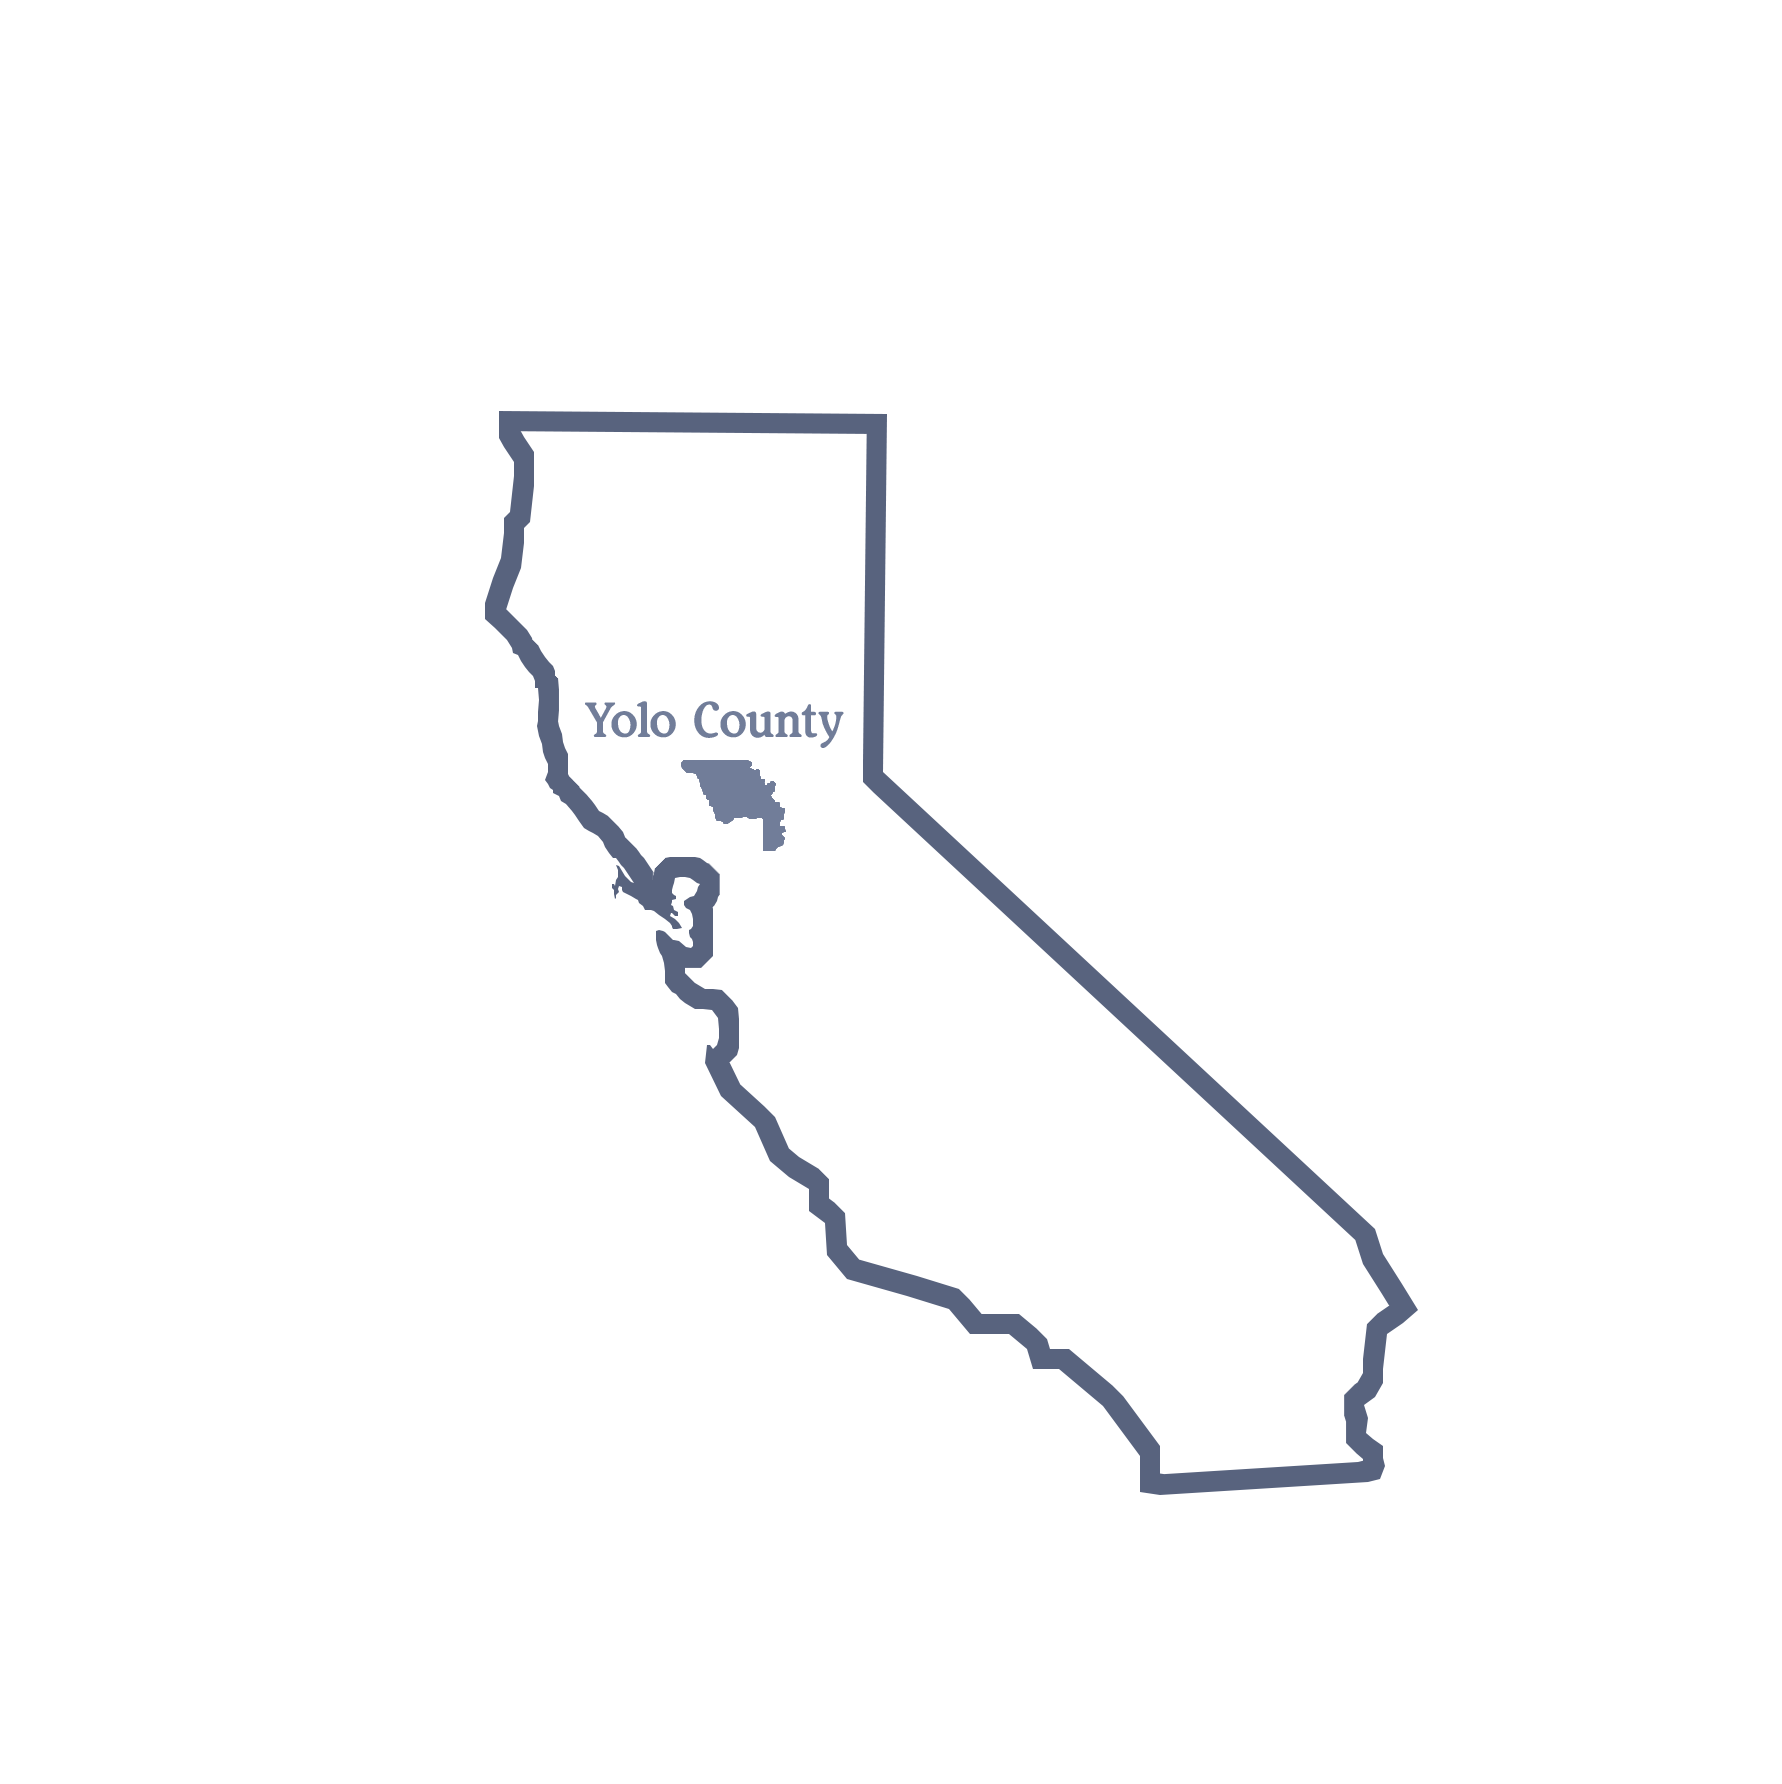 location of Yolo County